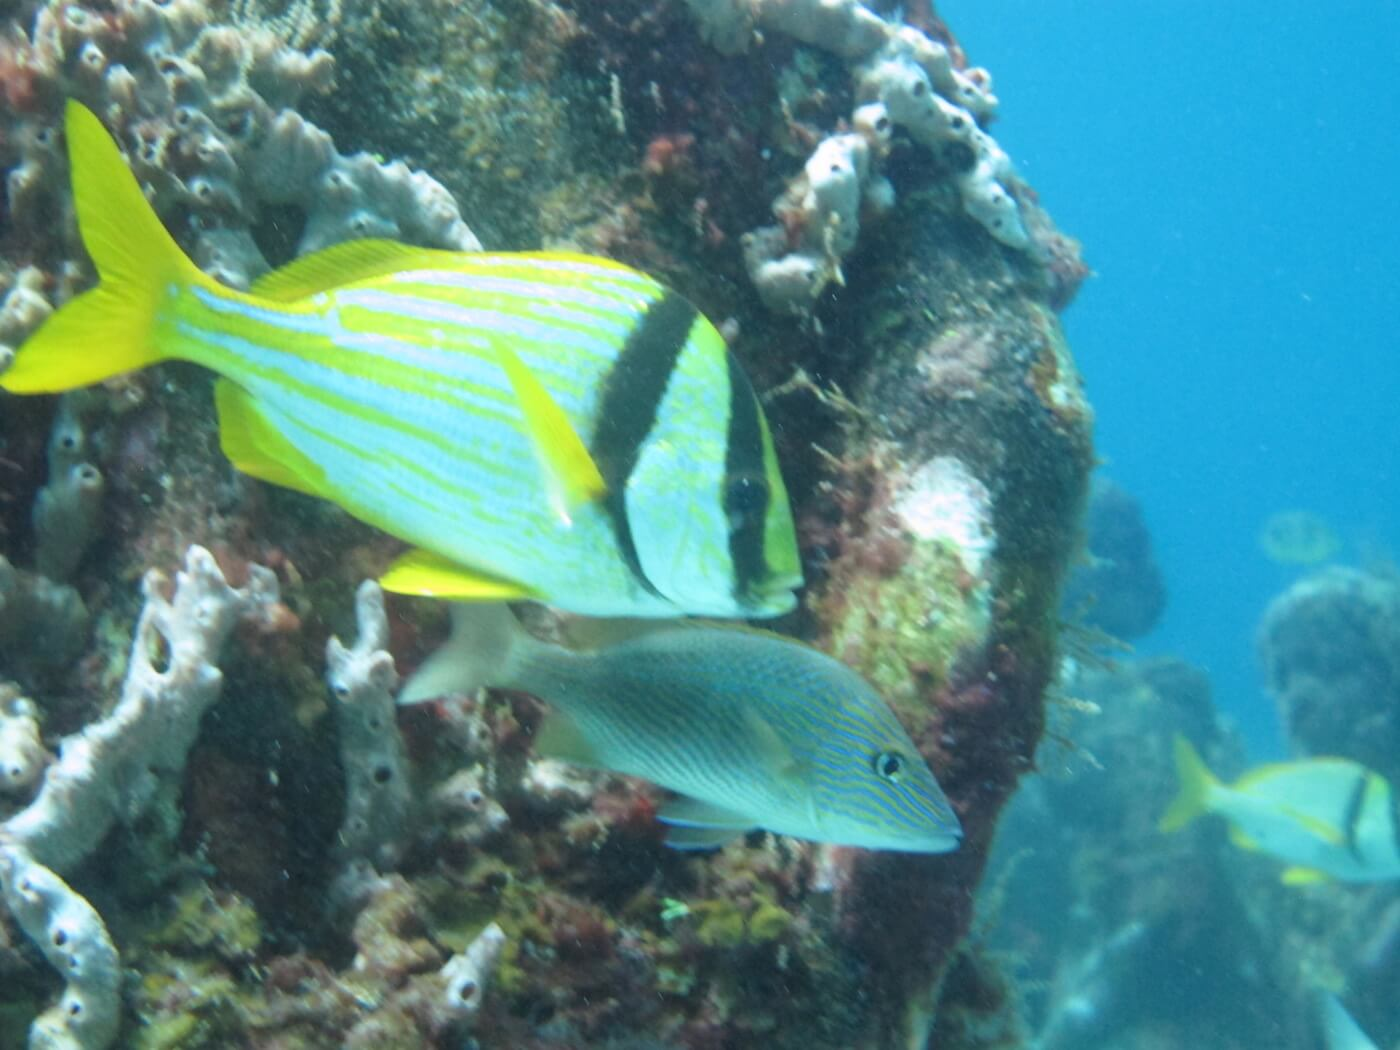 Wildlife-Snorkeling-Scuba-Diving-Tours-Isla-Mujeres-Carey-Dive-Center-1